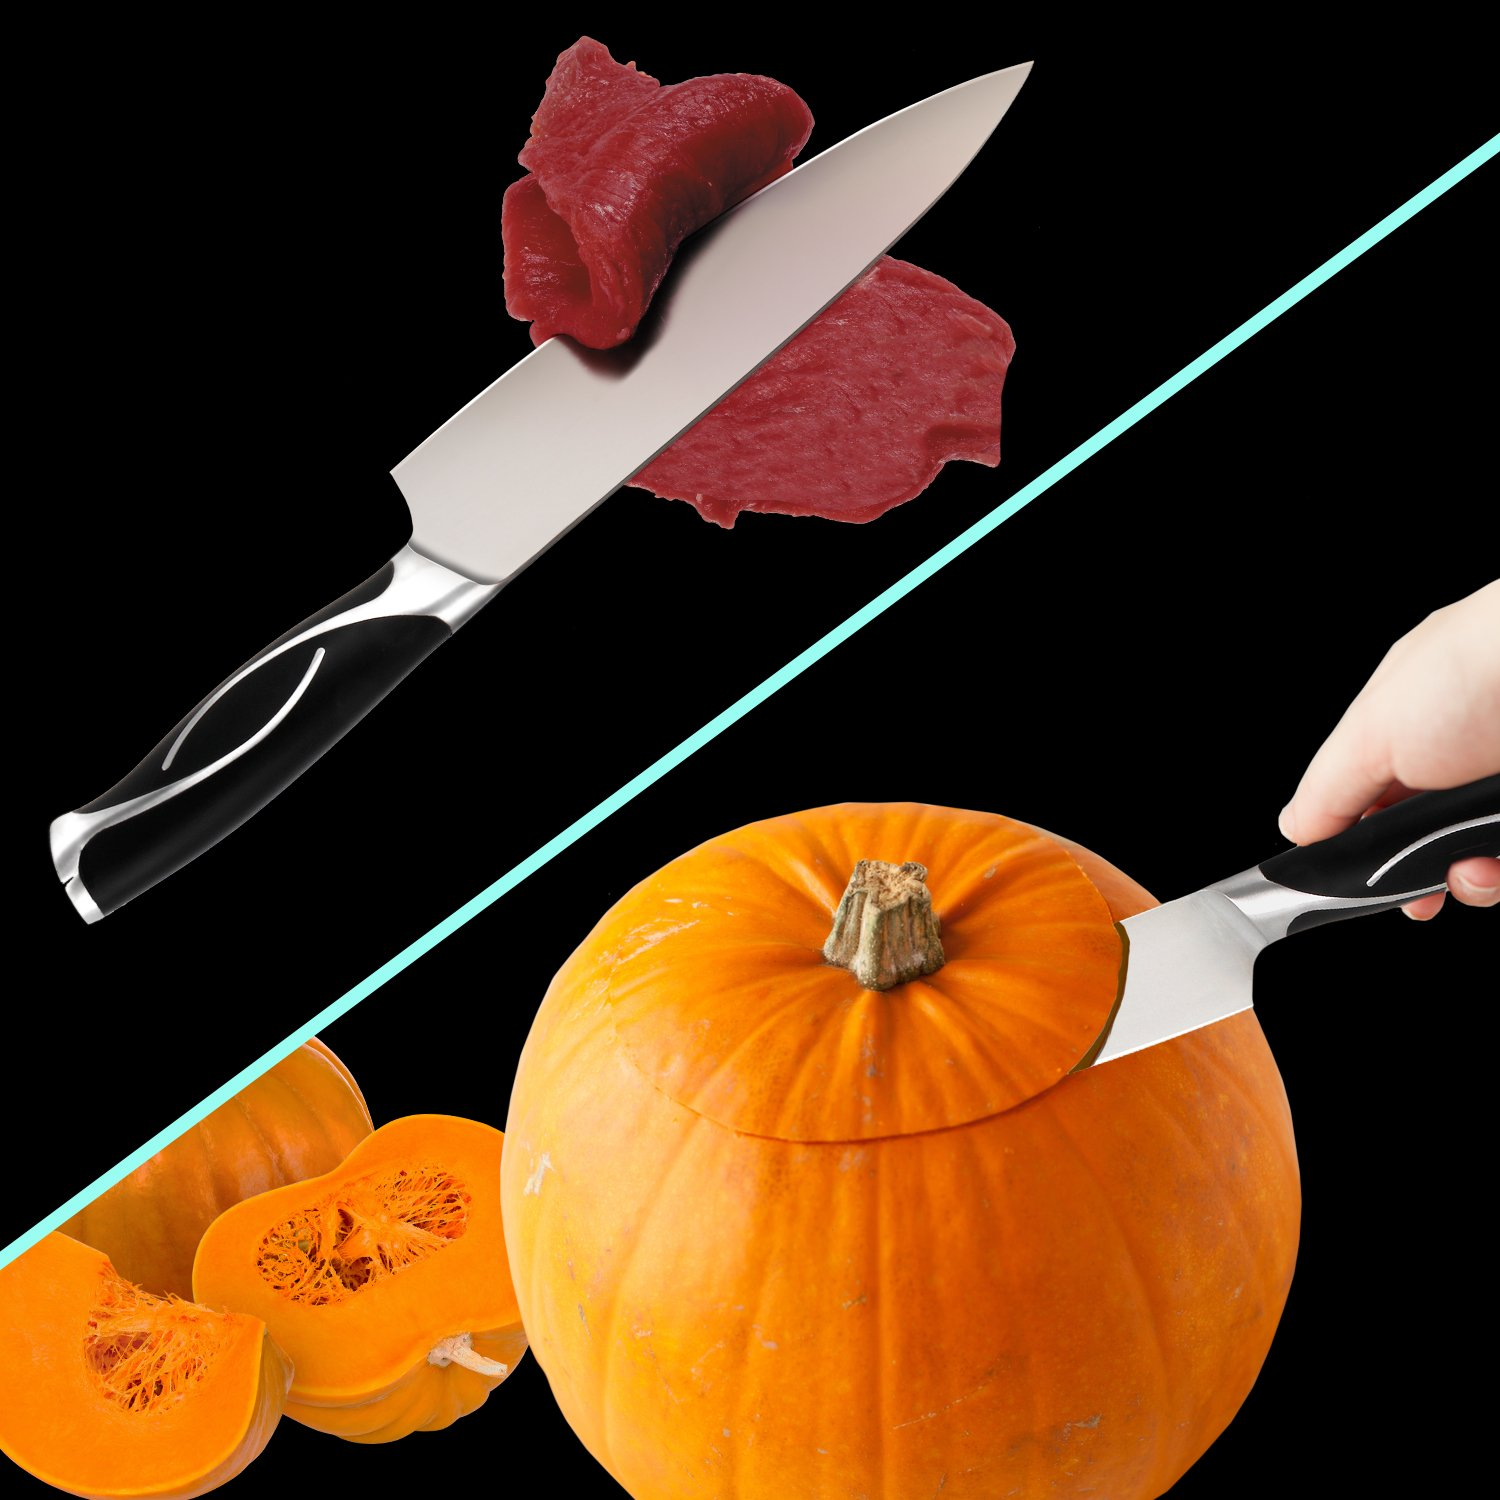 Professional 8 inch Chef Knife for Kitchen - Japanese Stainless Steel High Carbon Sharp Knives for Cutting Meat, Dicing Vegetables, Chopping, Slicing, Carving Food & More, with Gift Case, By Zvpod by  (Image #5)